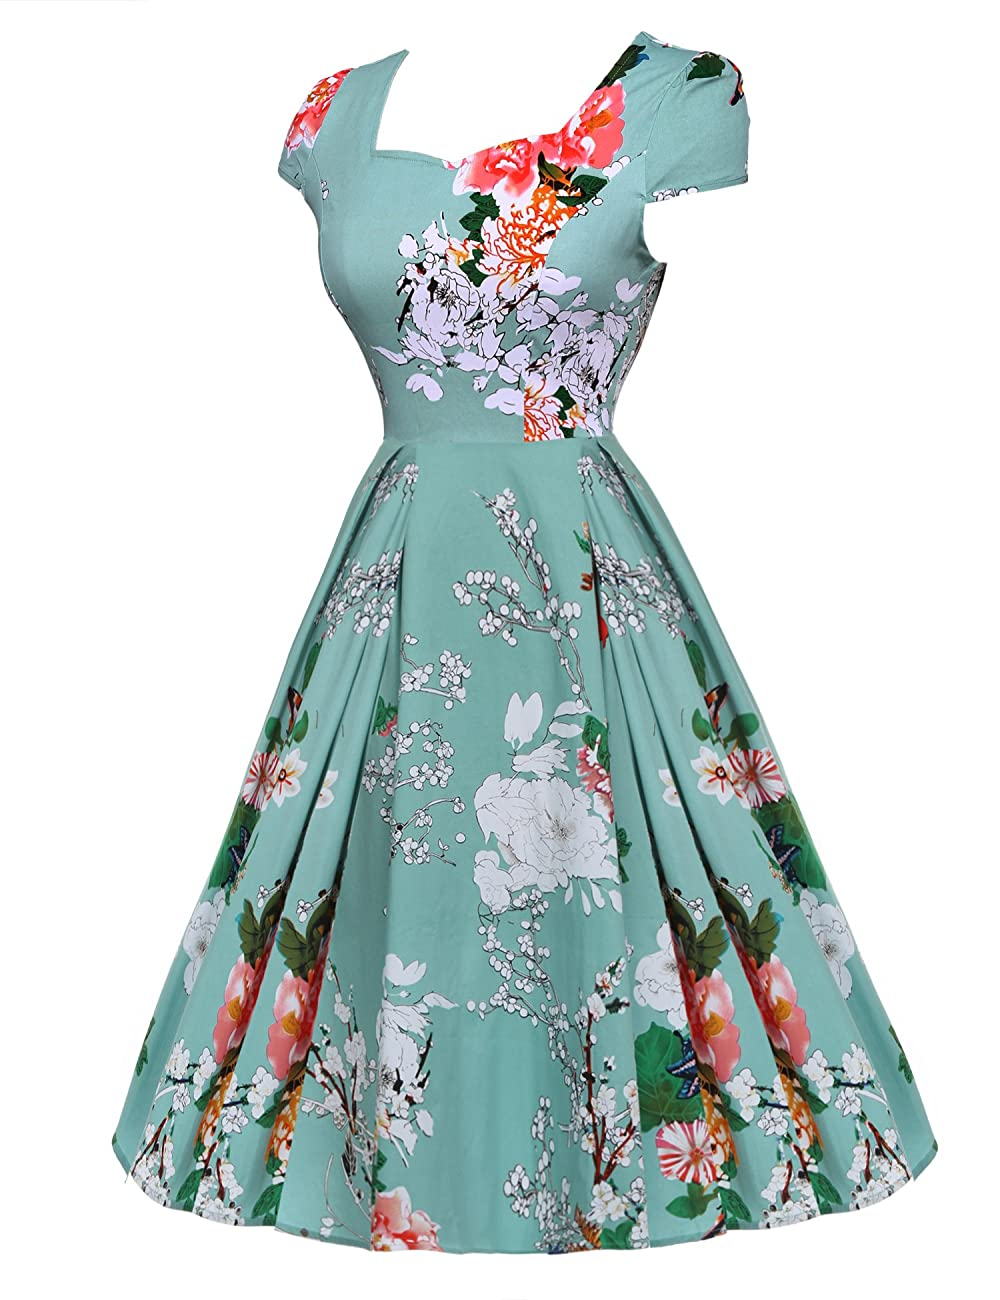 ACEVOG Women's 1950s Cap Sleeve Swing Vintage Floral Party Dresses Multi Colored 2